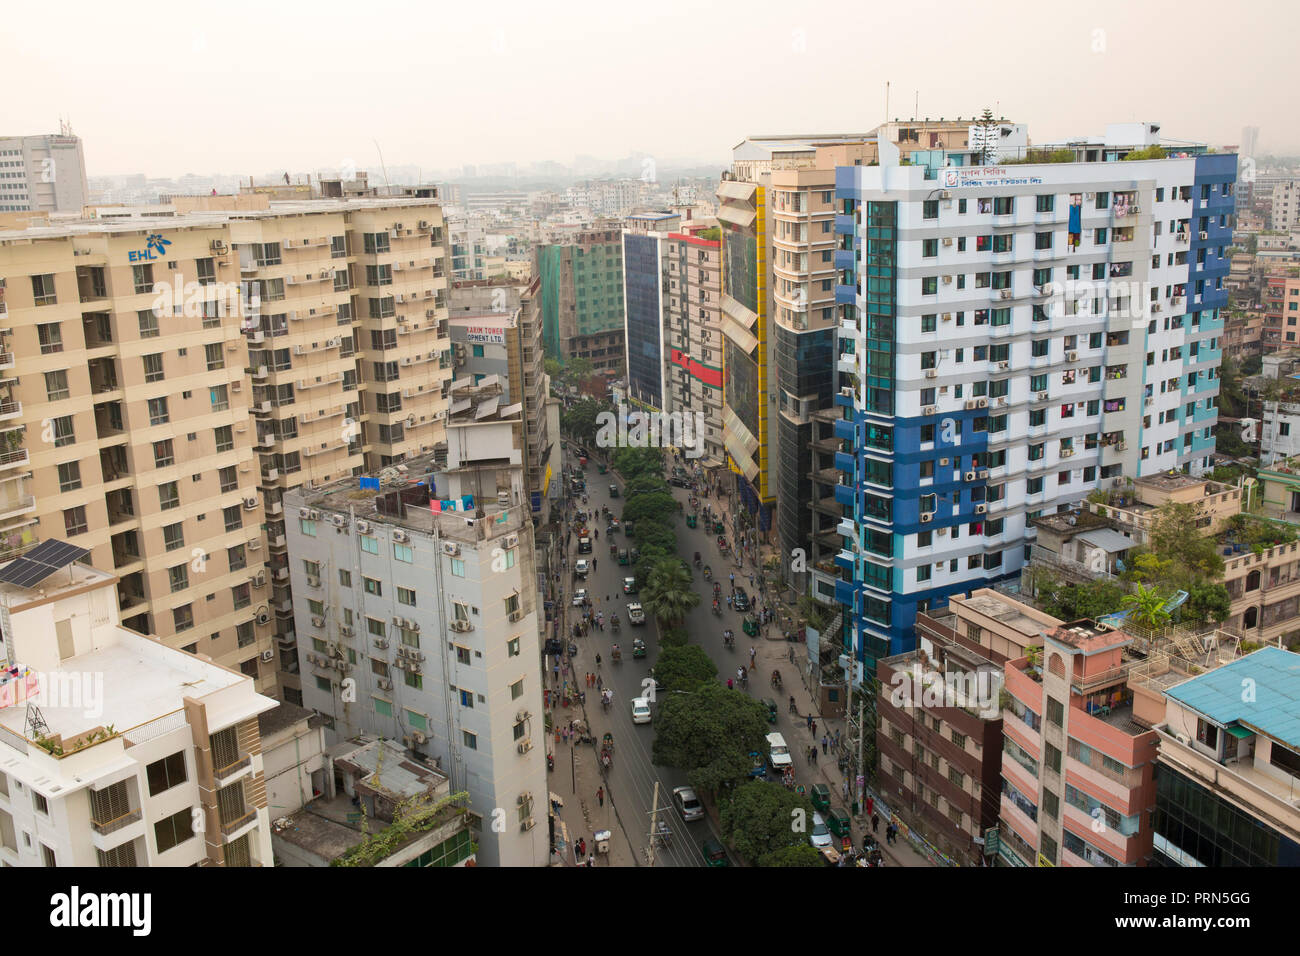 DHAKA, BANGLADESH - OCTOBER 03 : A general view of the Bangladeshi capital city Dhaka in Dhaka , Bangladesh on October 03, 2018. Dhaka is the main hub of economic activity in the country Bangladesh, generating a fifth of national GDP and nearly half of all formal jobs. Credit: zakir hossain chowdhury zakir/Alamy Live News - Stock Image